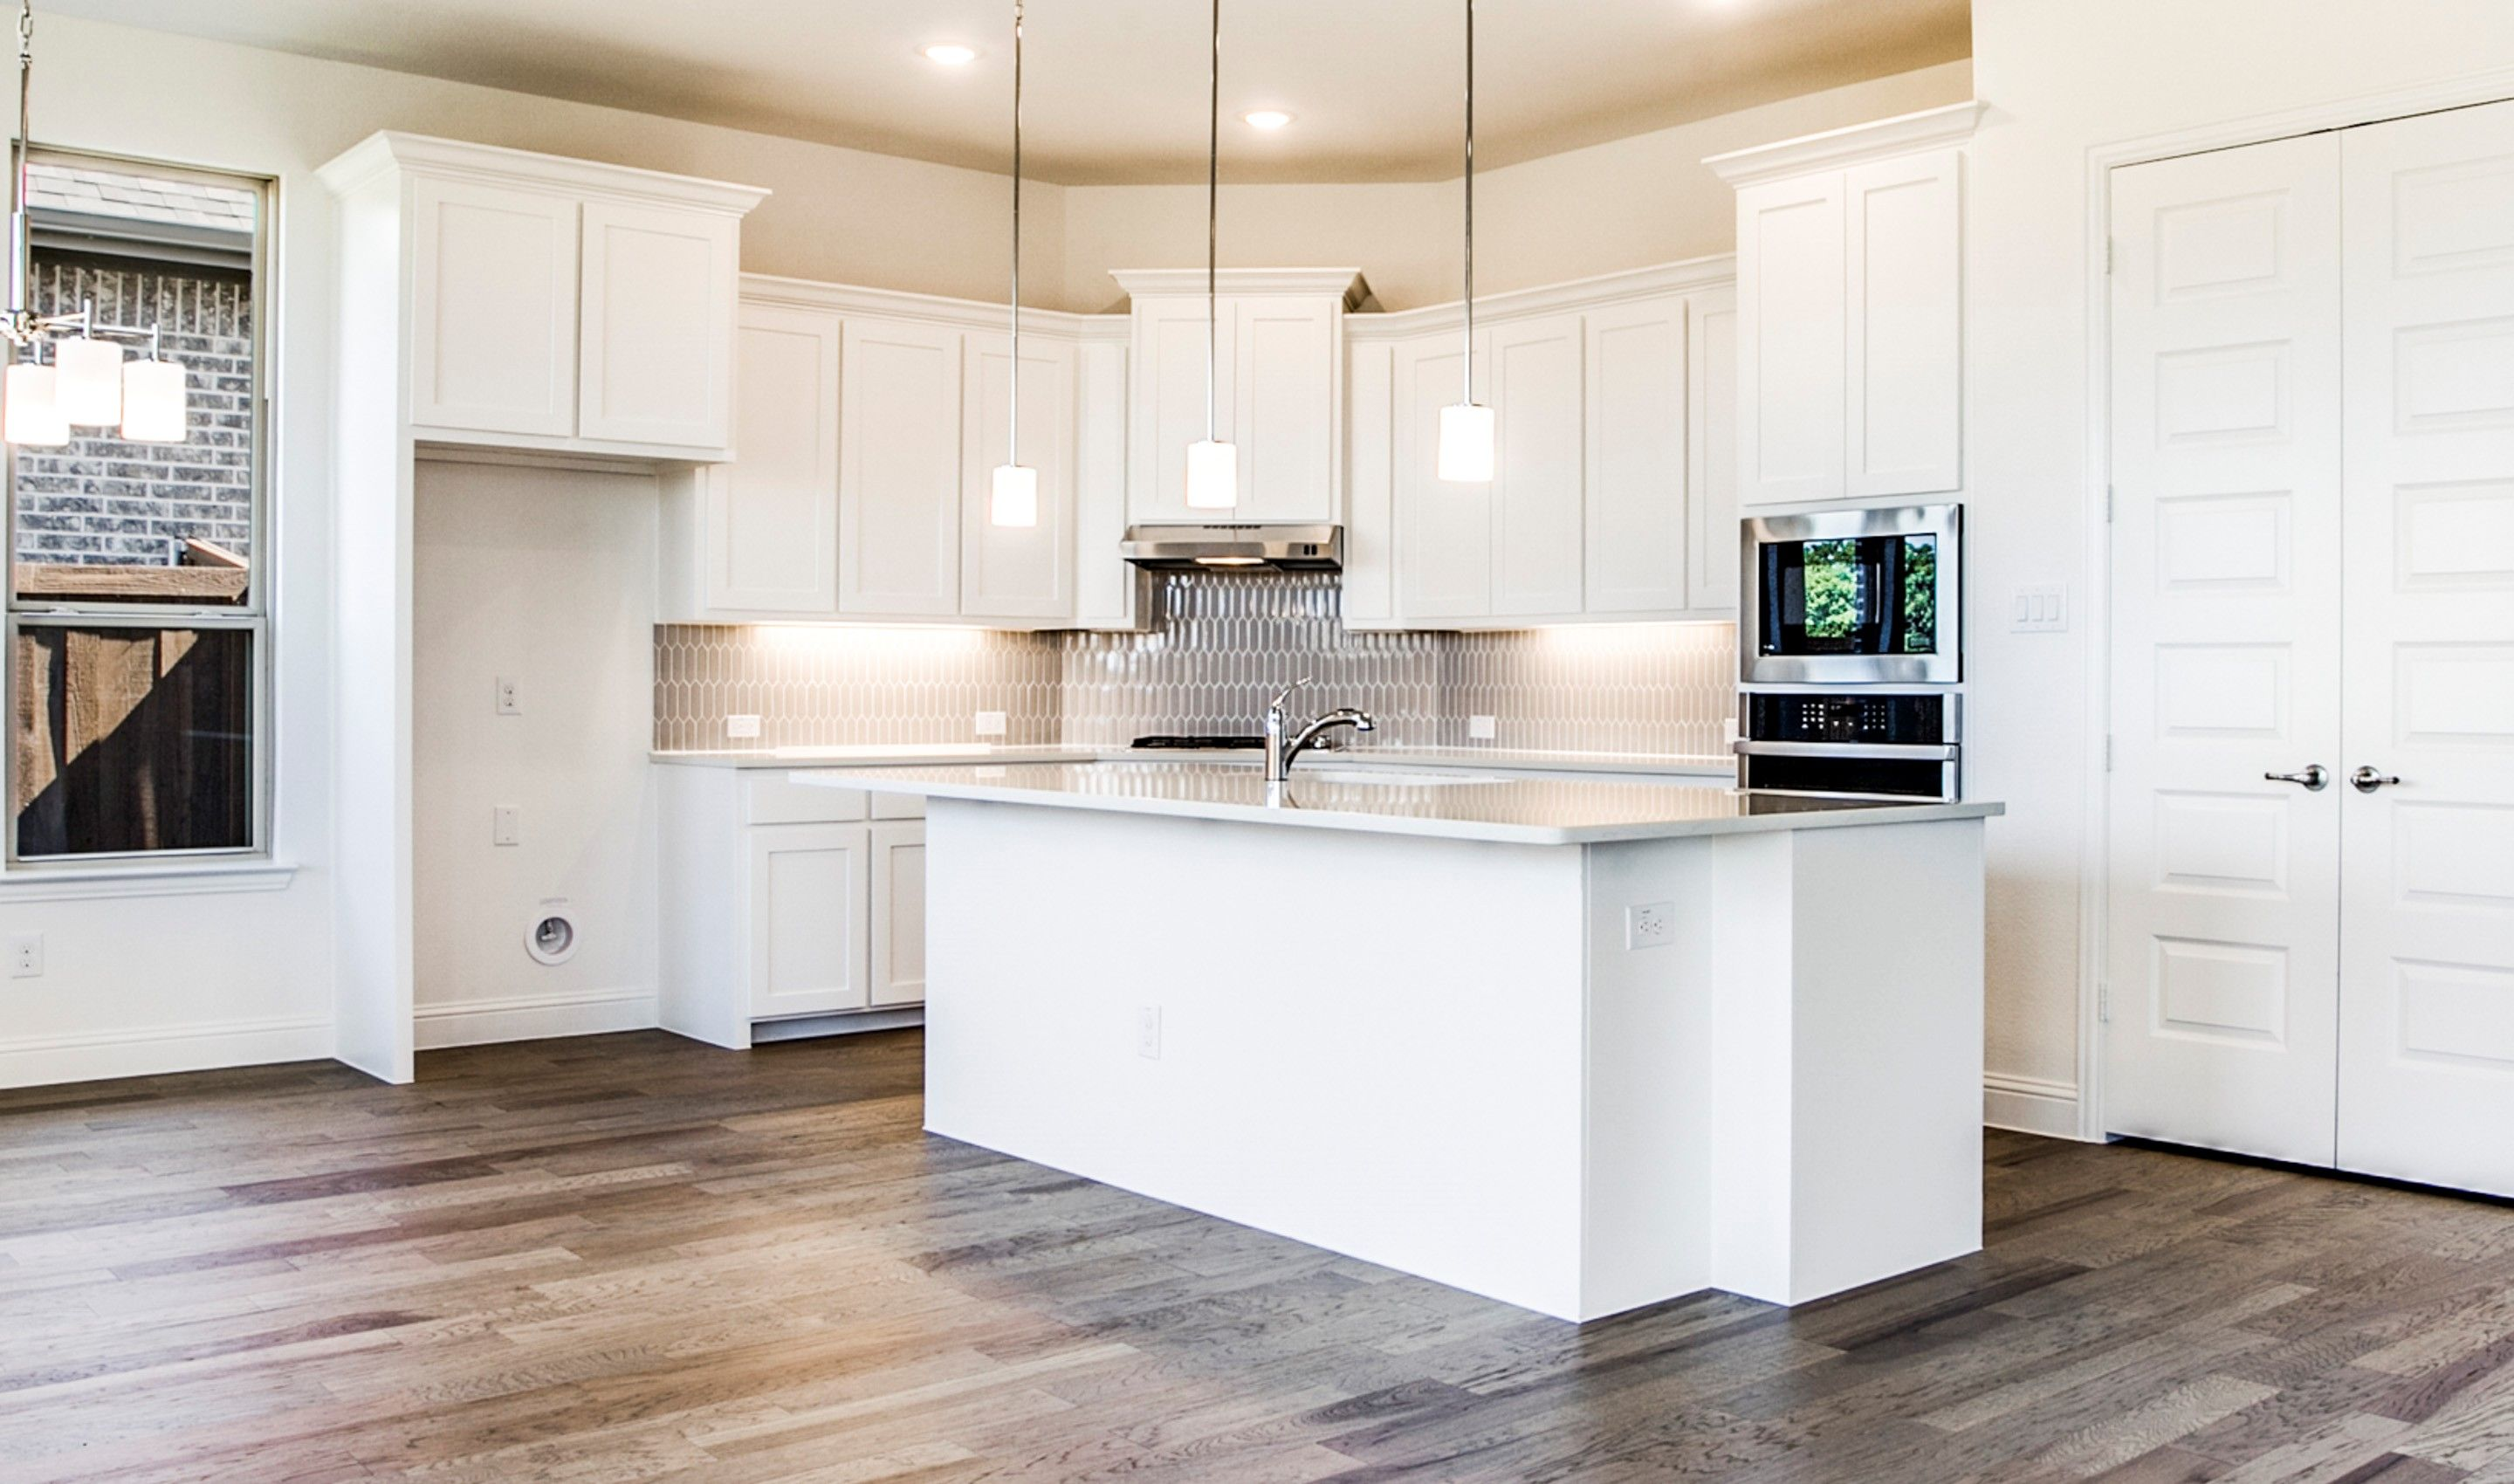 Kitchen featured in the Laguna By K. Hovnanian® Homes in Dallas, TX